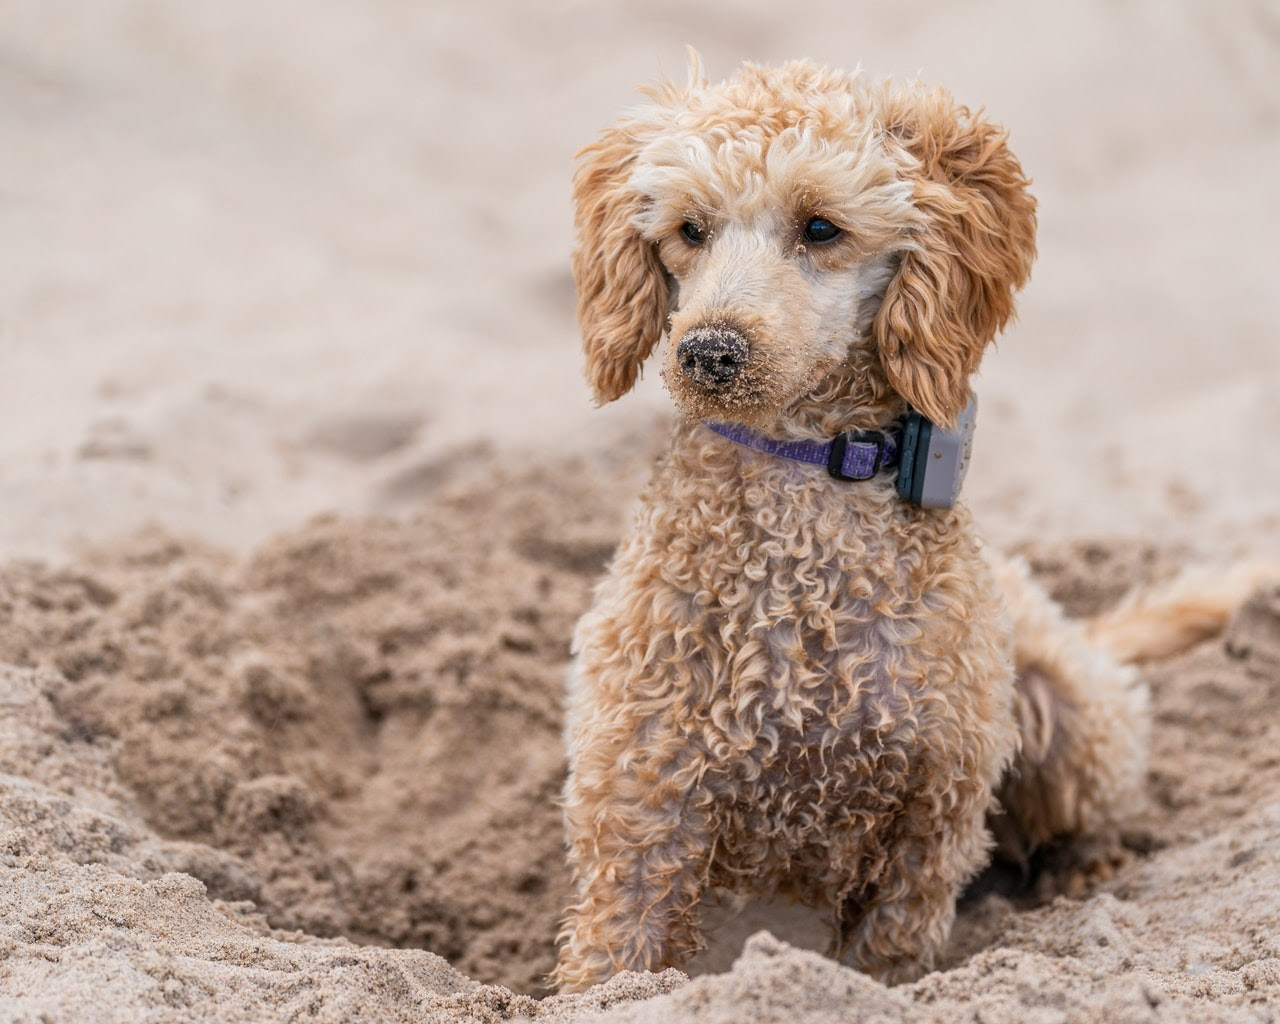 A blonde poodle on a beach with sand on its nose.